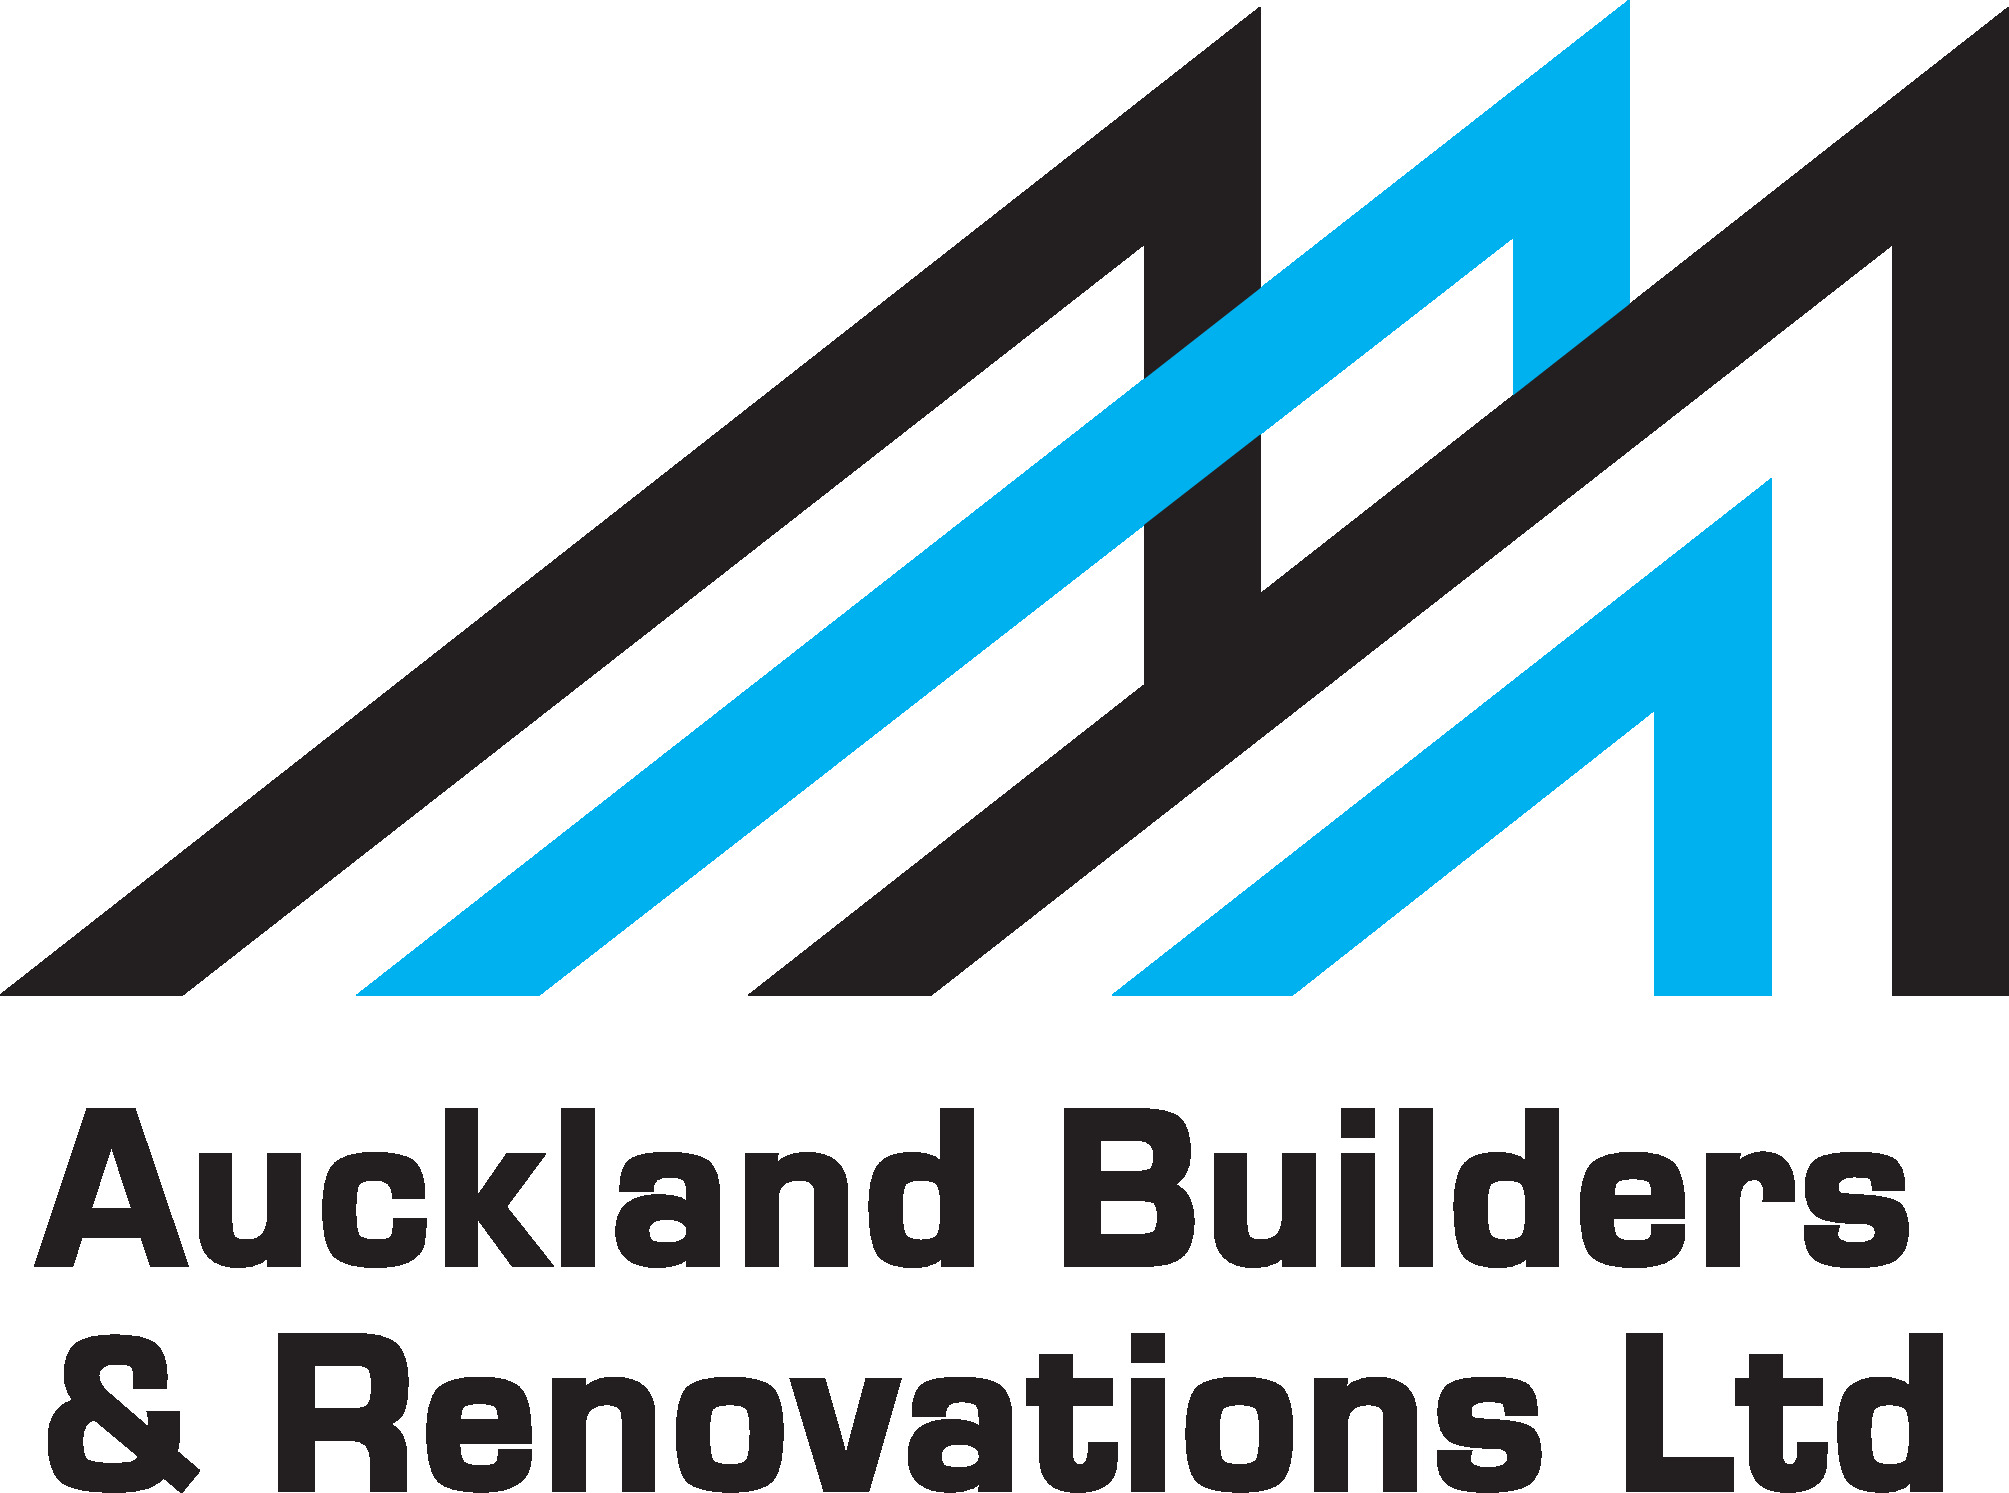 Builders & Renovations